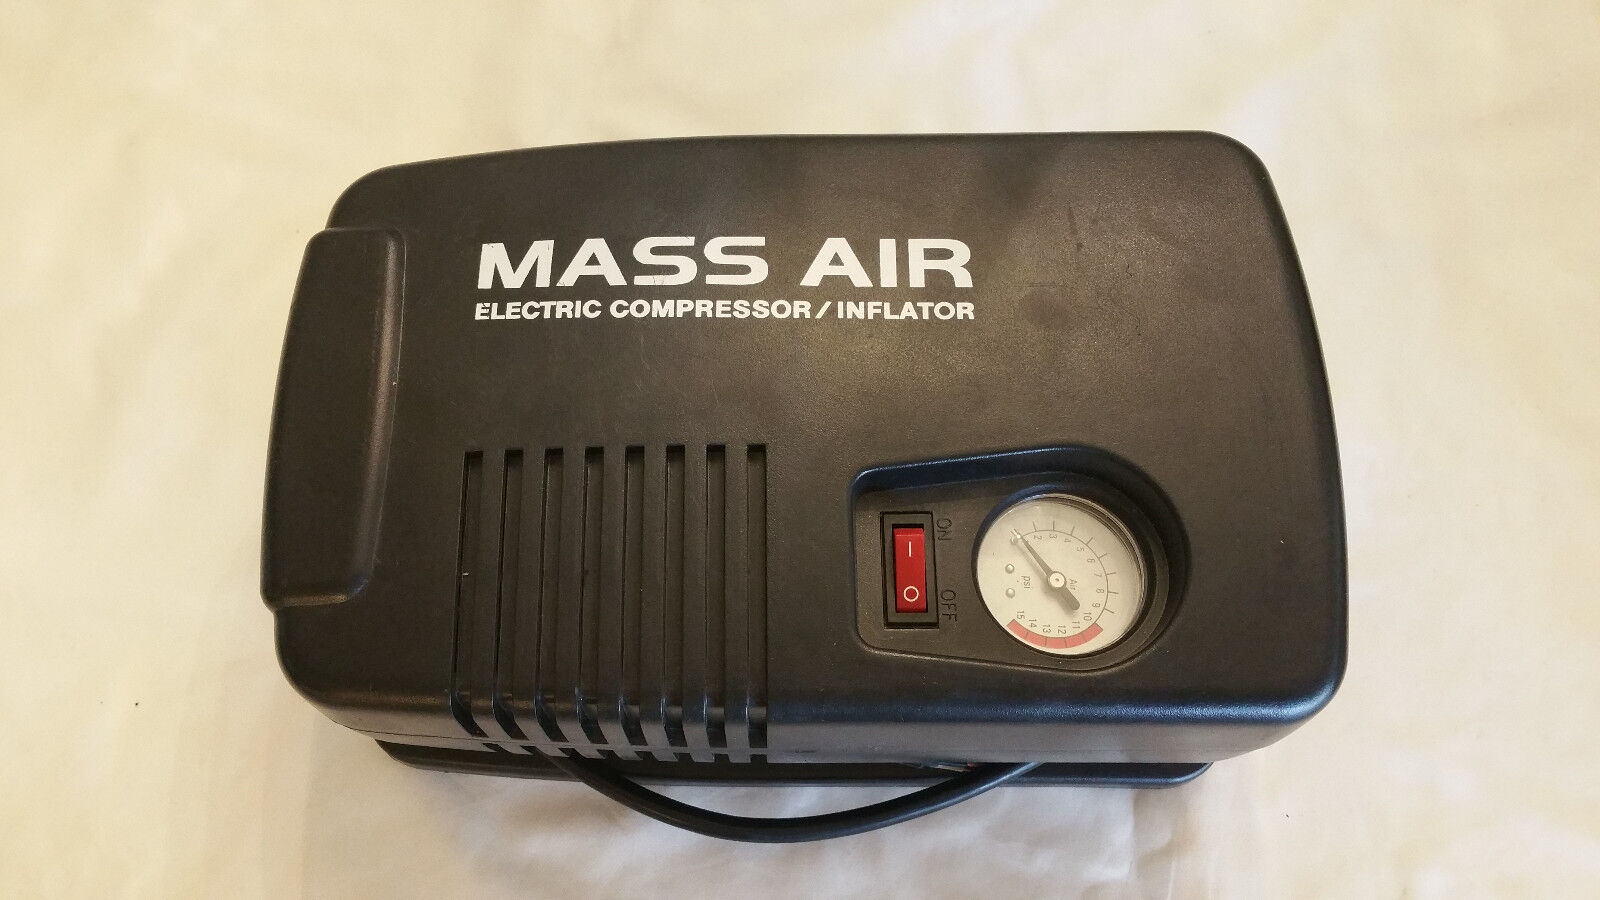 Mass Air Sports Ball Electric Compressor Inflator Model 2068,120V, 2Amp 15 PSI